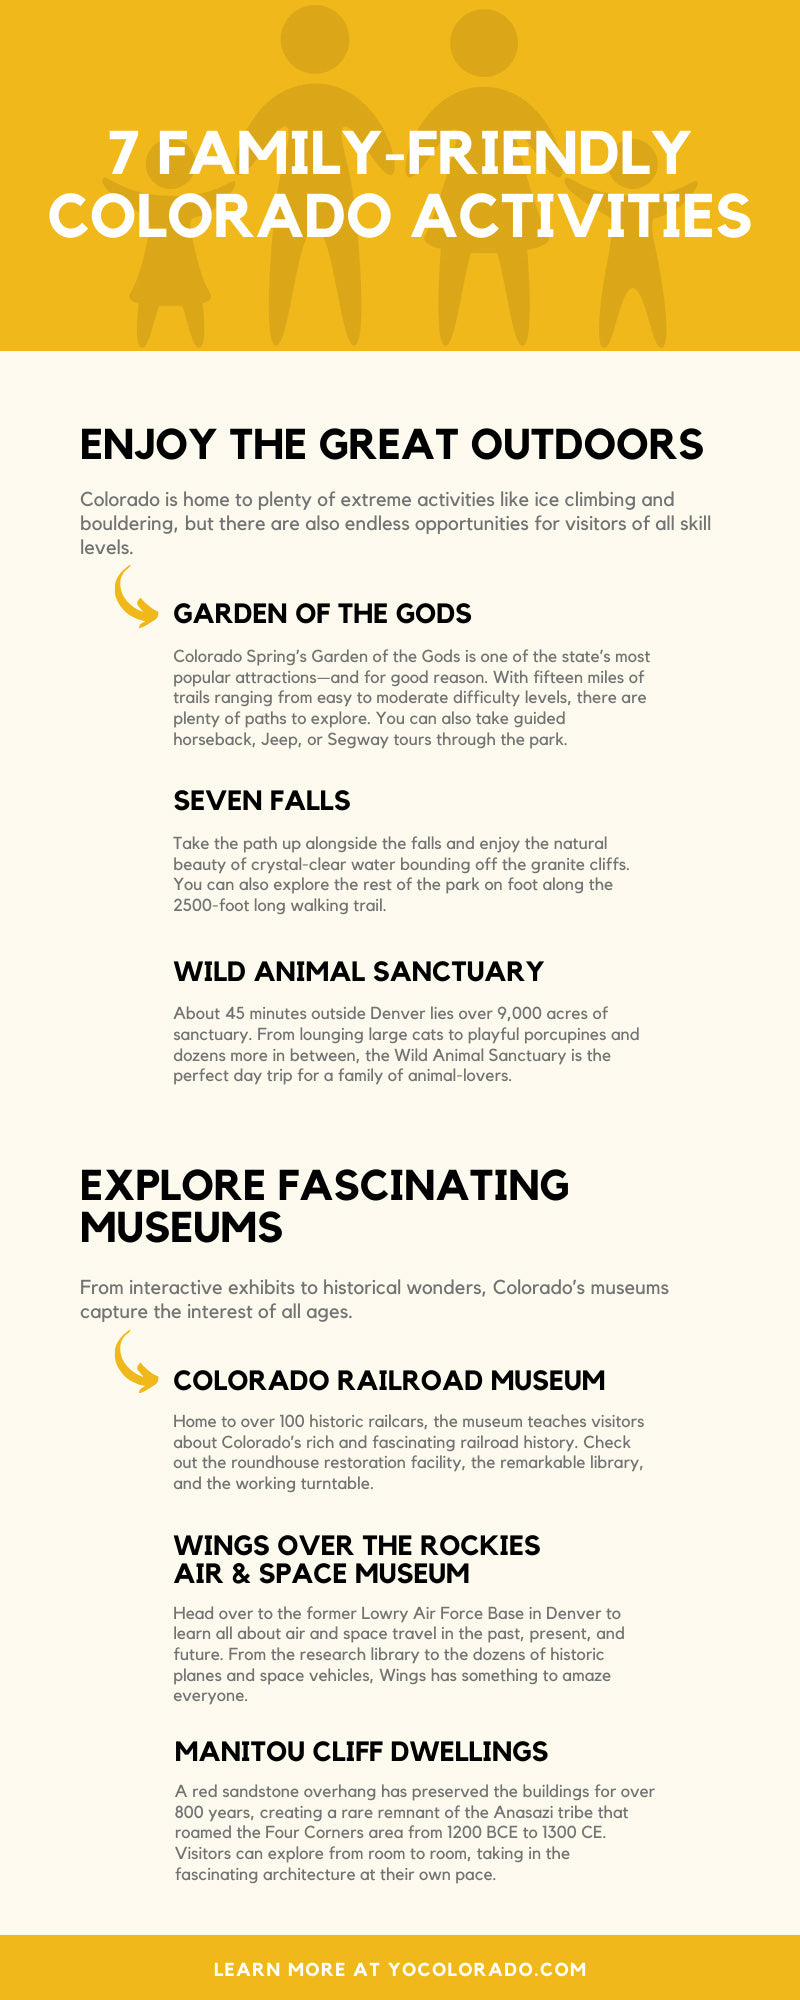 7 Family-Friendly Colorado Activities infographic